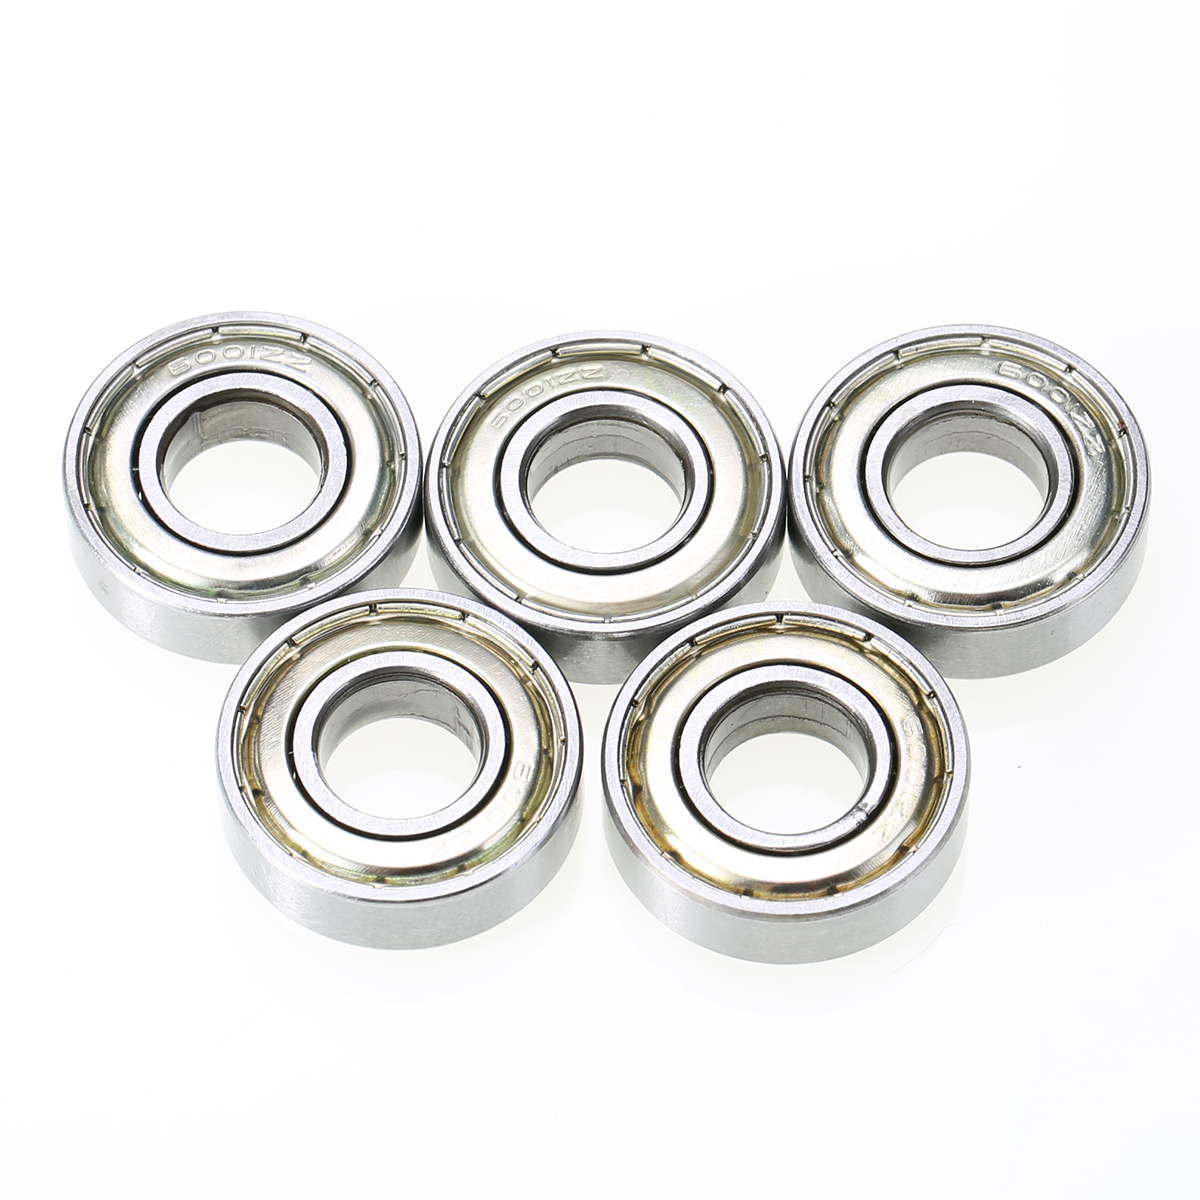 5Pieces 6001ZZ <font><b>Ball</b></font> <font><b>Bearing</b></font> Shielded Deep Groove Radial <font><b>Ball</b></font> <font><b>Bearing</b></font> 12mm * <font><b>28mm</b></font> * 8mm For Electric Motors Wheel <font><b>Bearings</b></font> Mayitr image